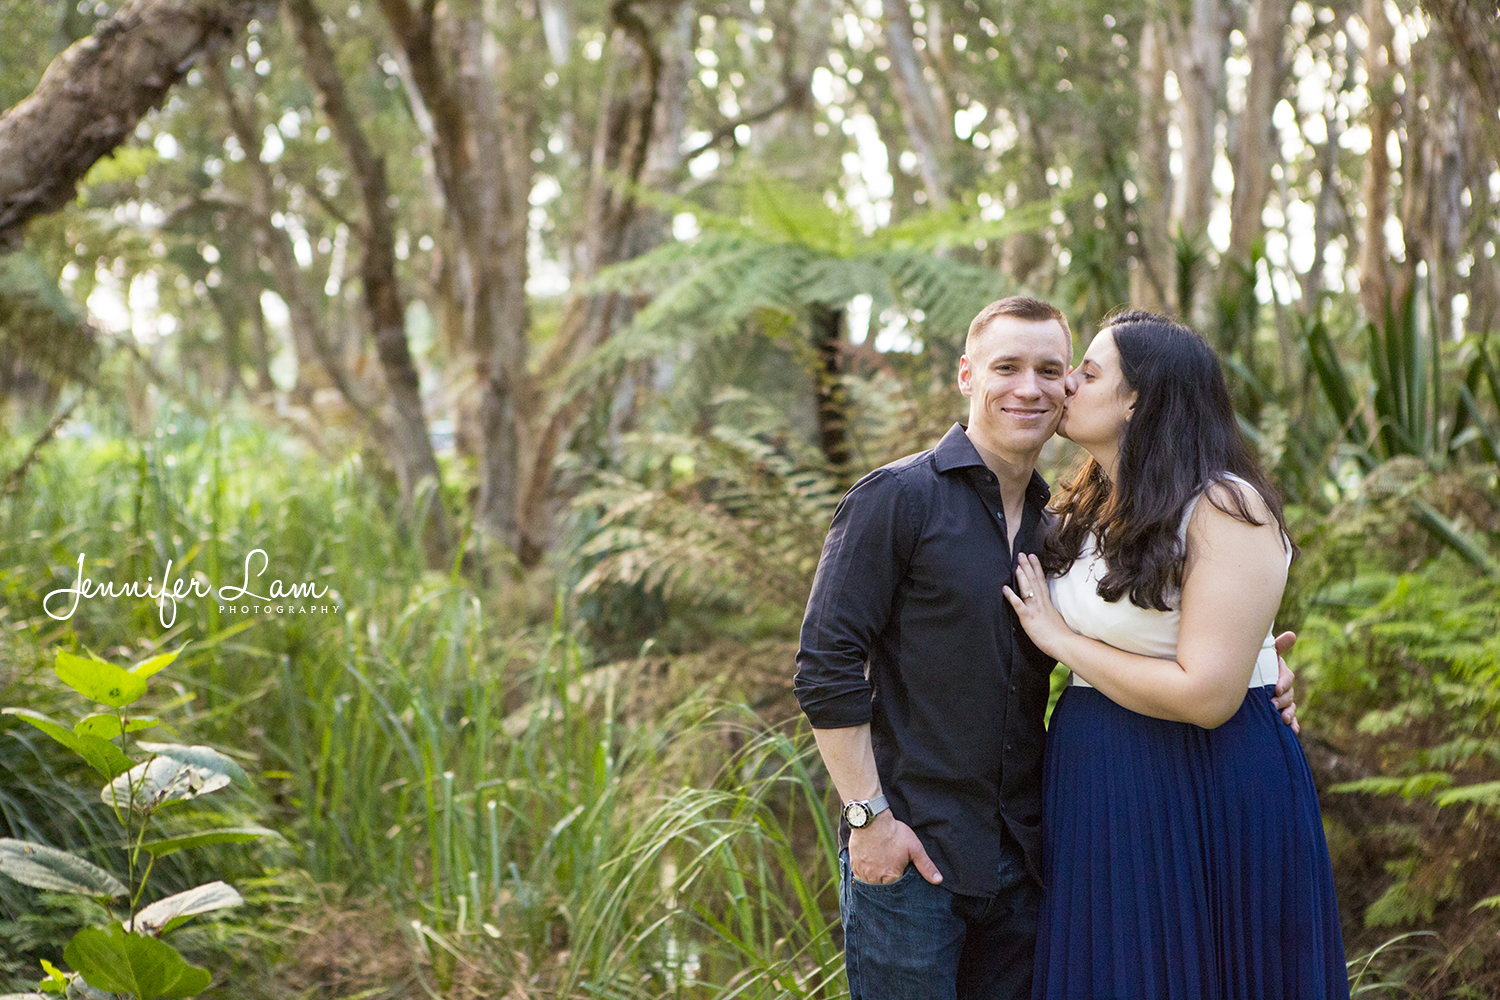 Engagement Session - Sydney Wedding Photographer - Jennifer Lam Photography (19).jpg